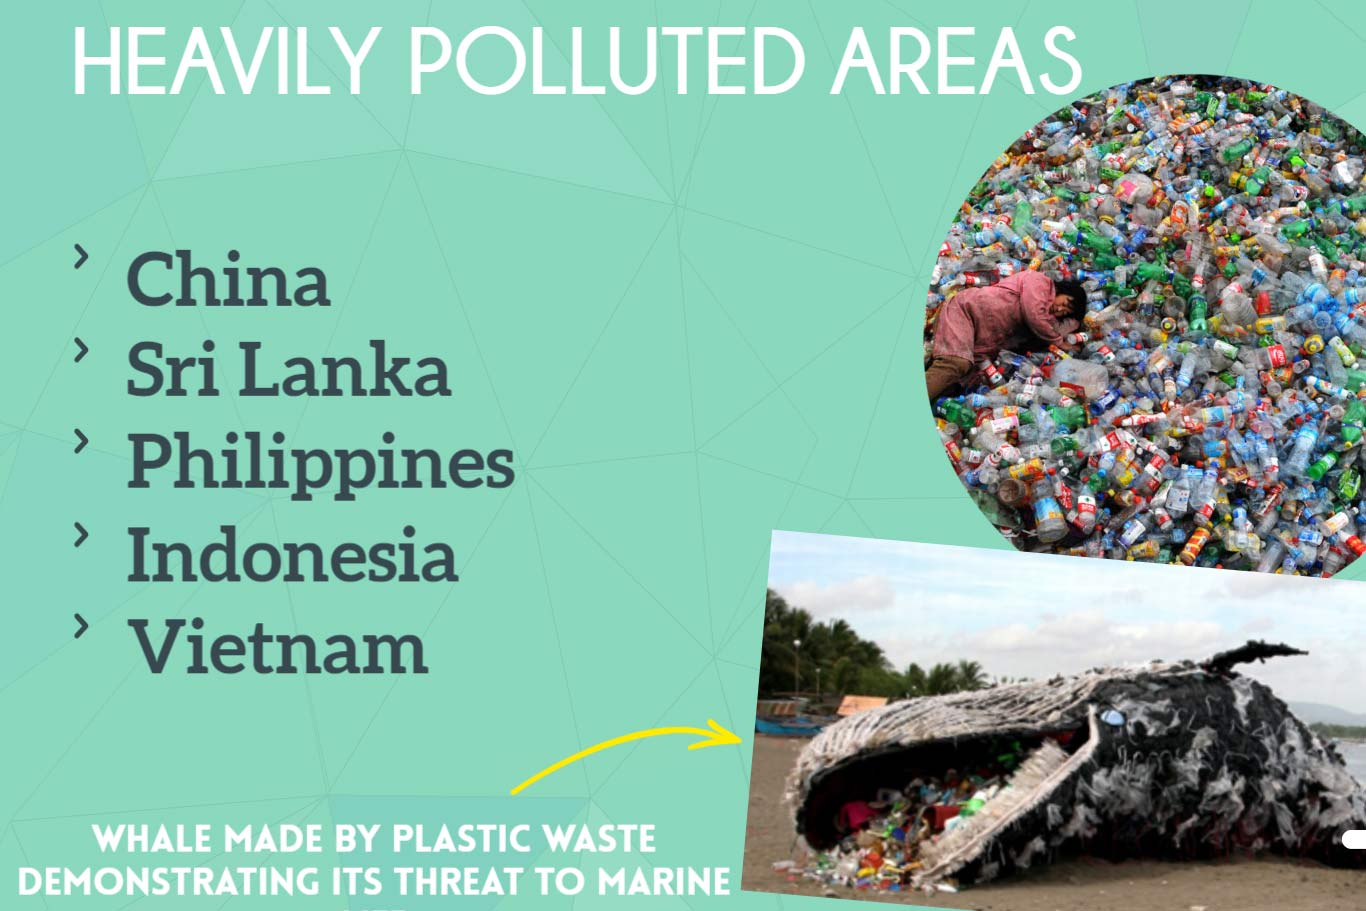 Student Synergy Project: The negative effects of plastics on our world